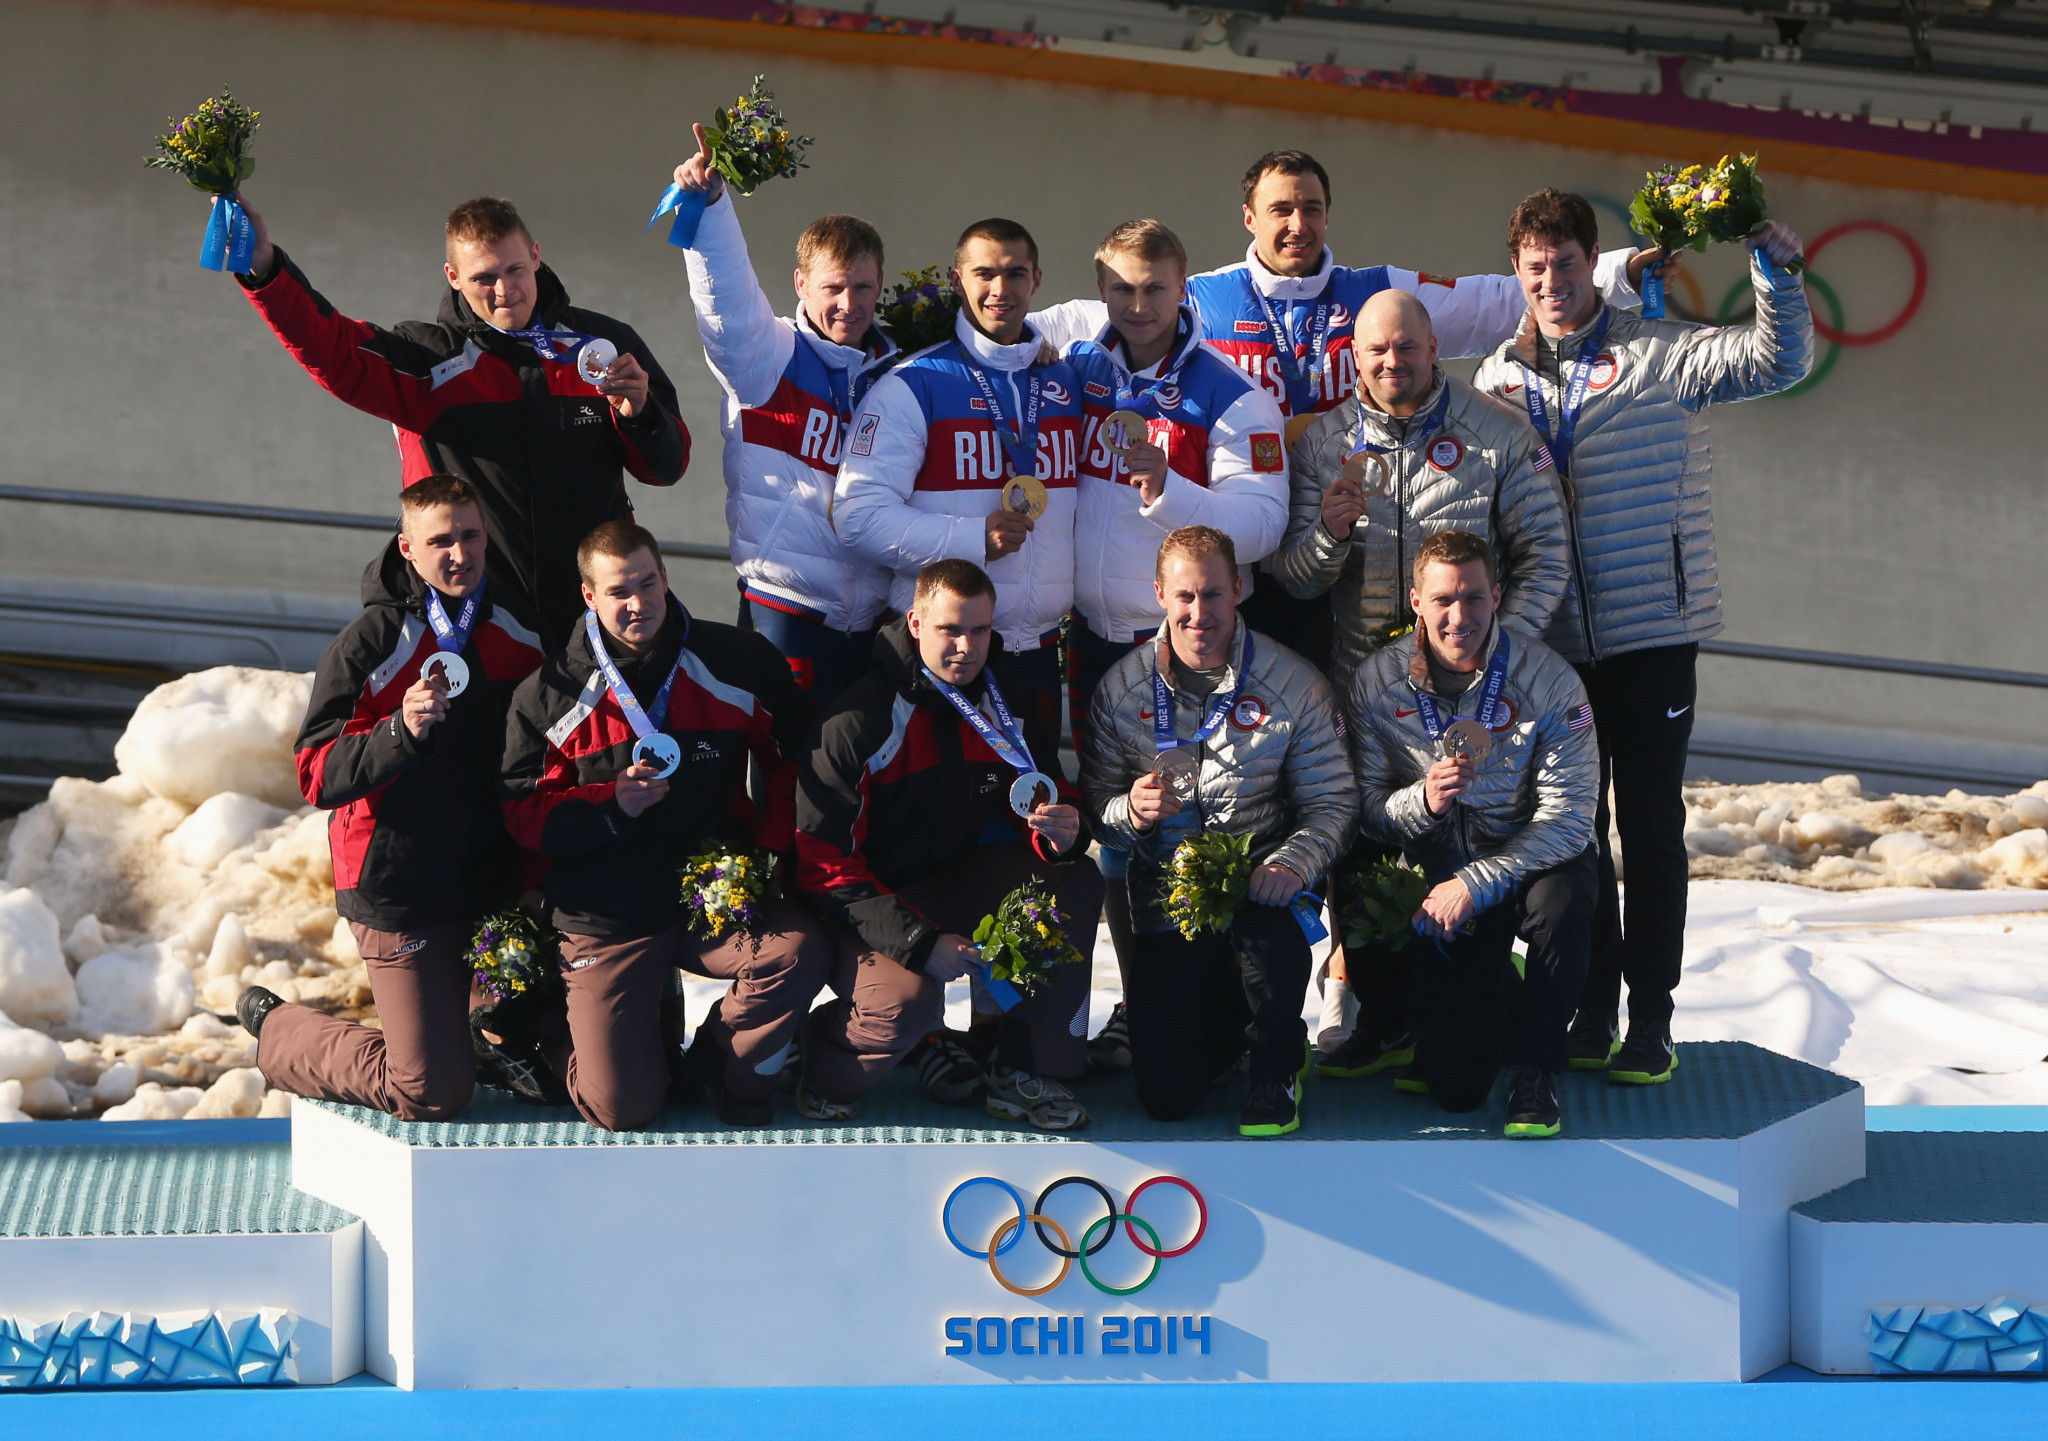 Latvia, left, have been promoted to the Olympic gold medals in the four-man bob at Sochi 2014 and the United States, right, to silver after the original winners Russia were disqualified ©Getty Images